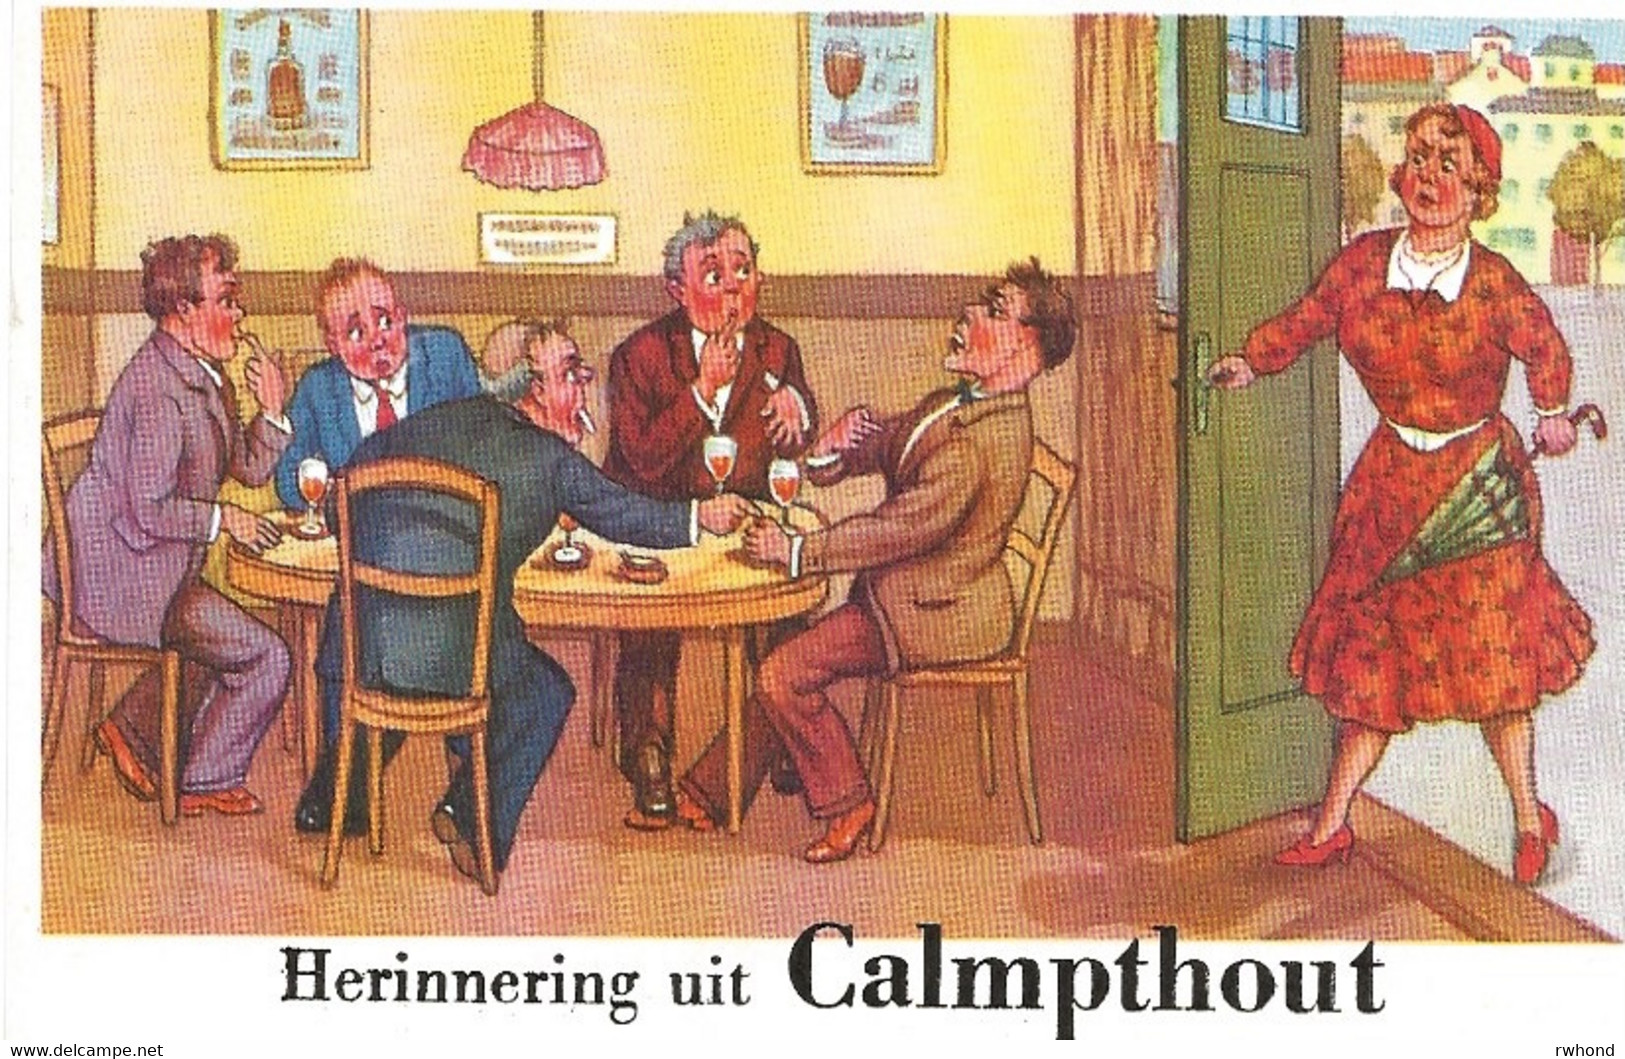 44 Calmpthout Herinnering Uit Calmpthout - Kalmthout